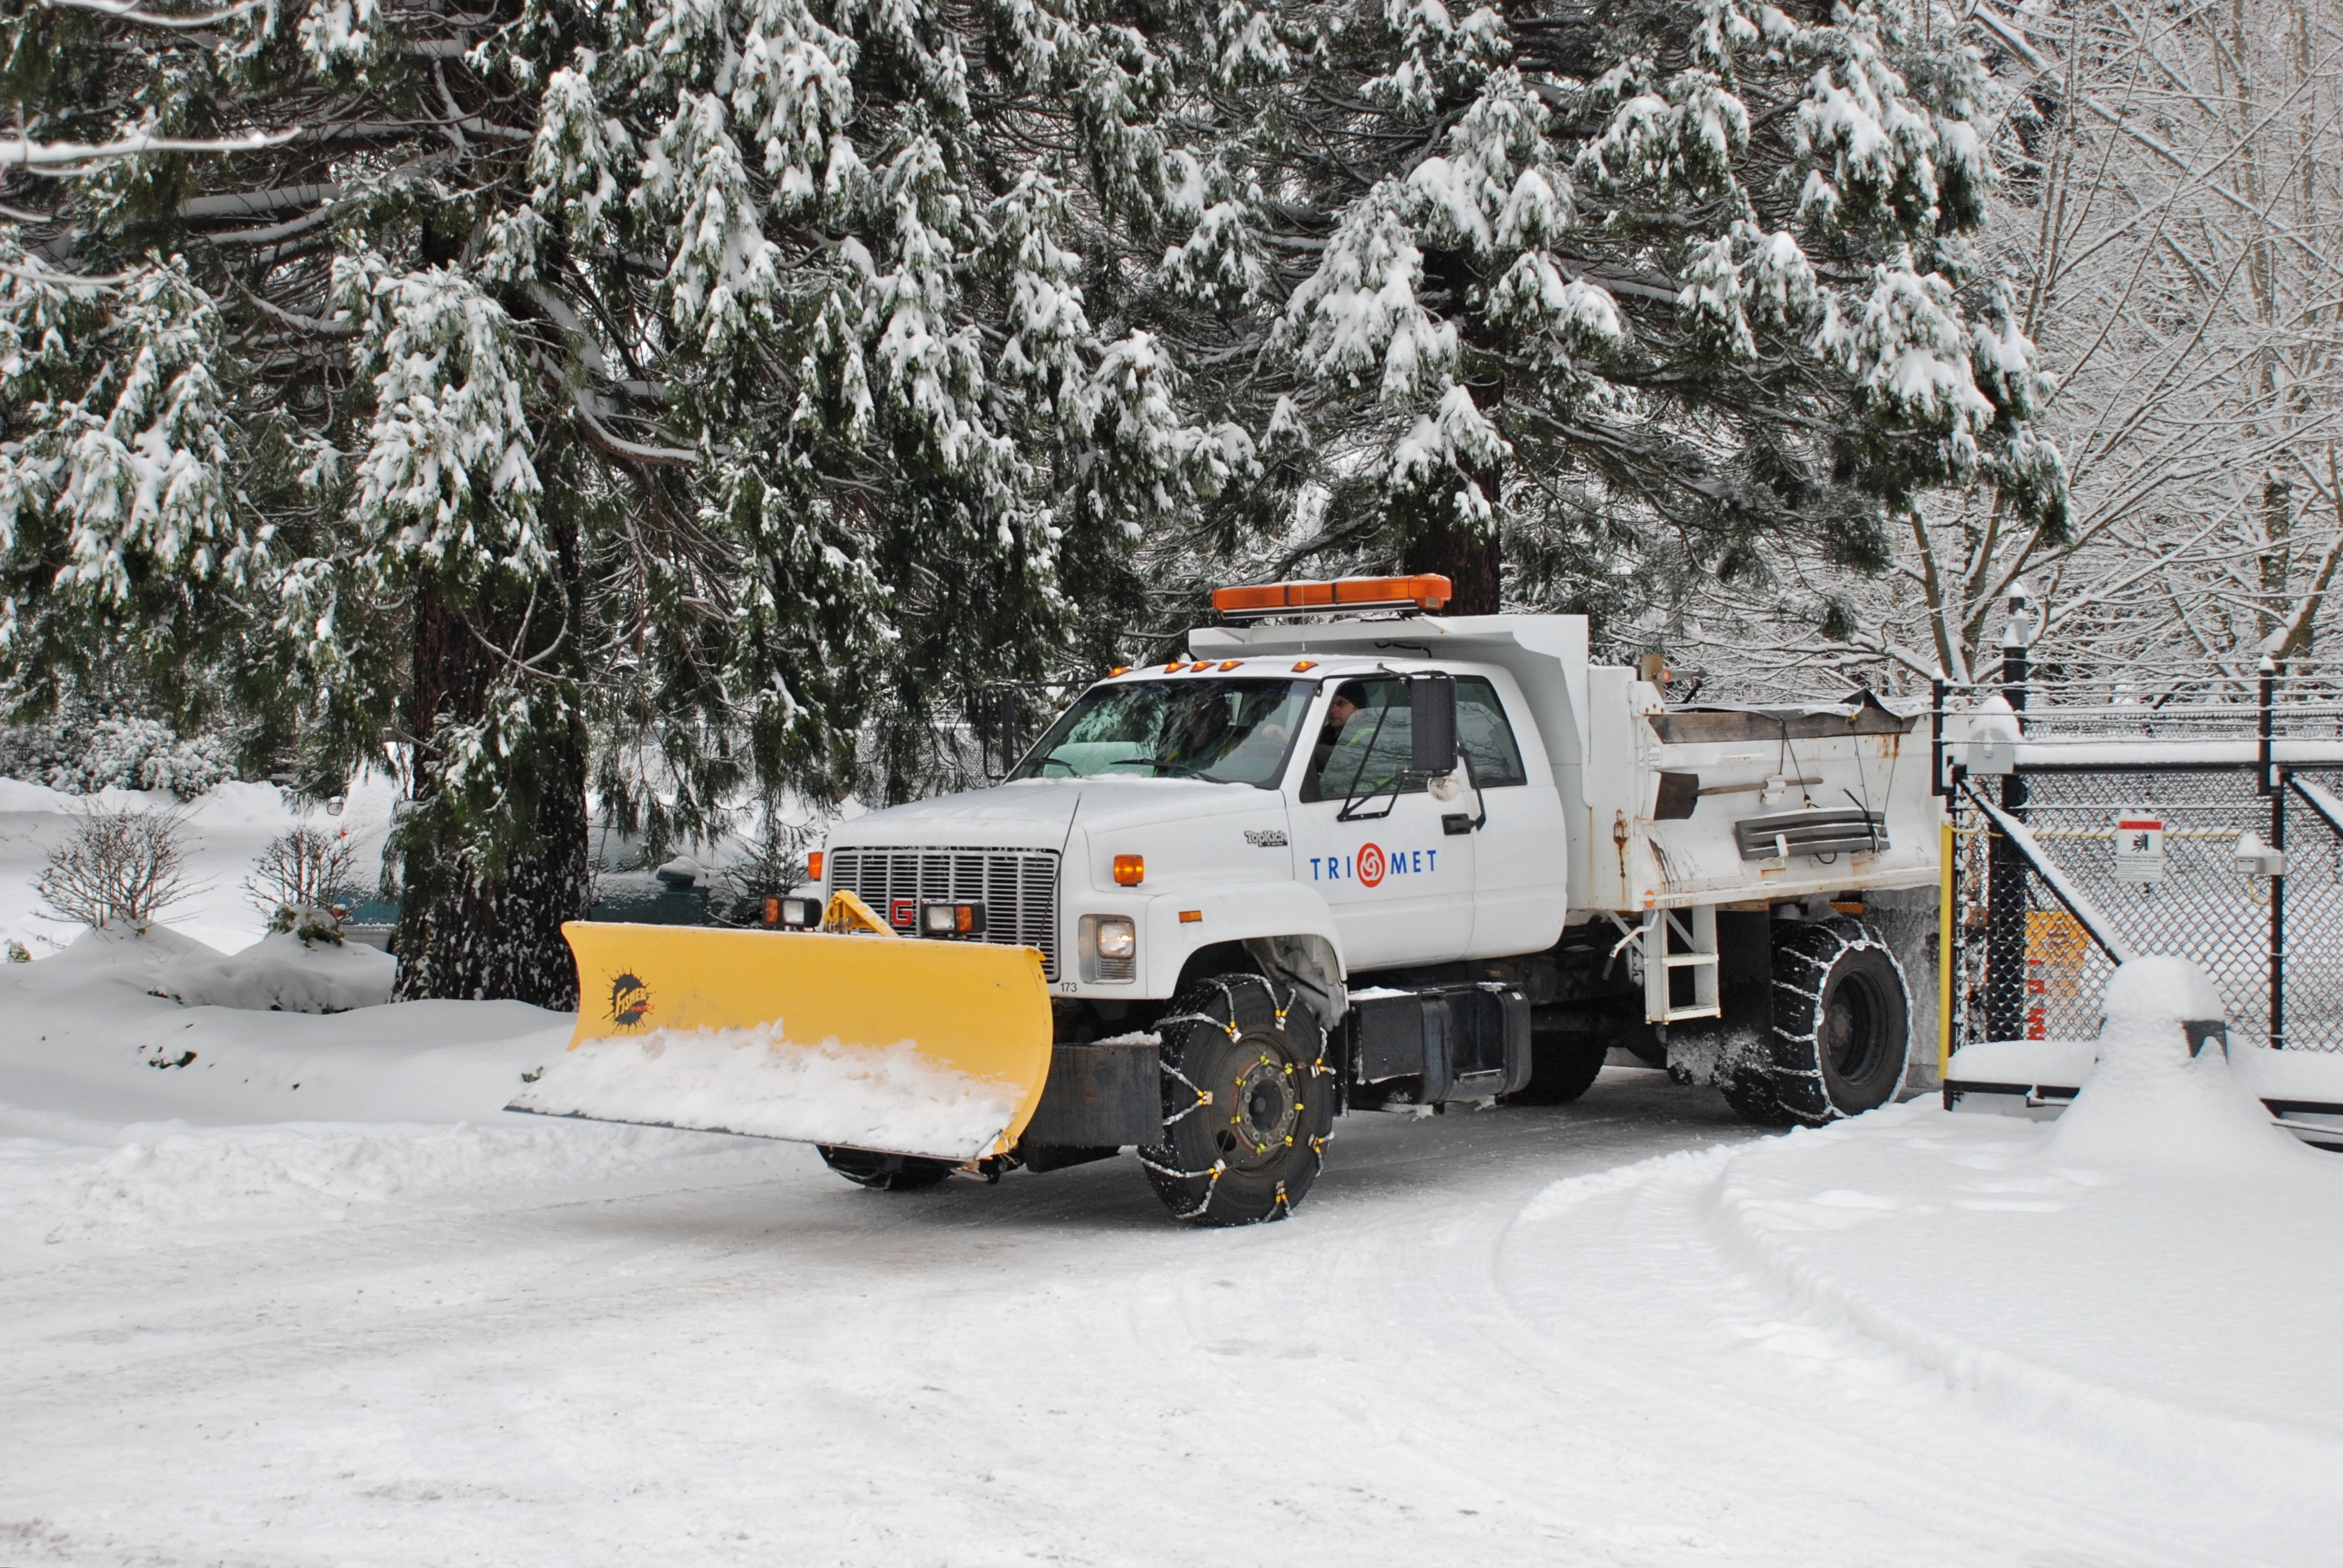 Small dump truck equipped with a snow plow on the front and with tire chains of two different types. TriMet (Portland, Oregon, transit system), Dec. 2008.